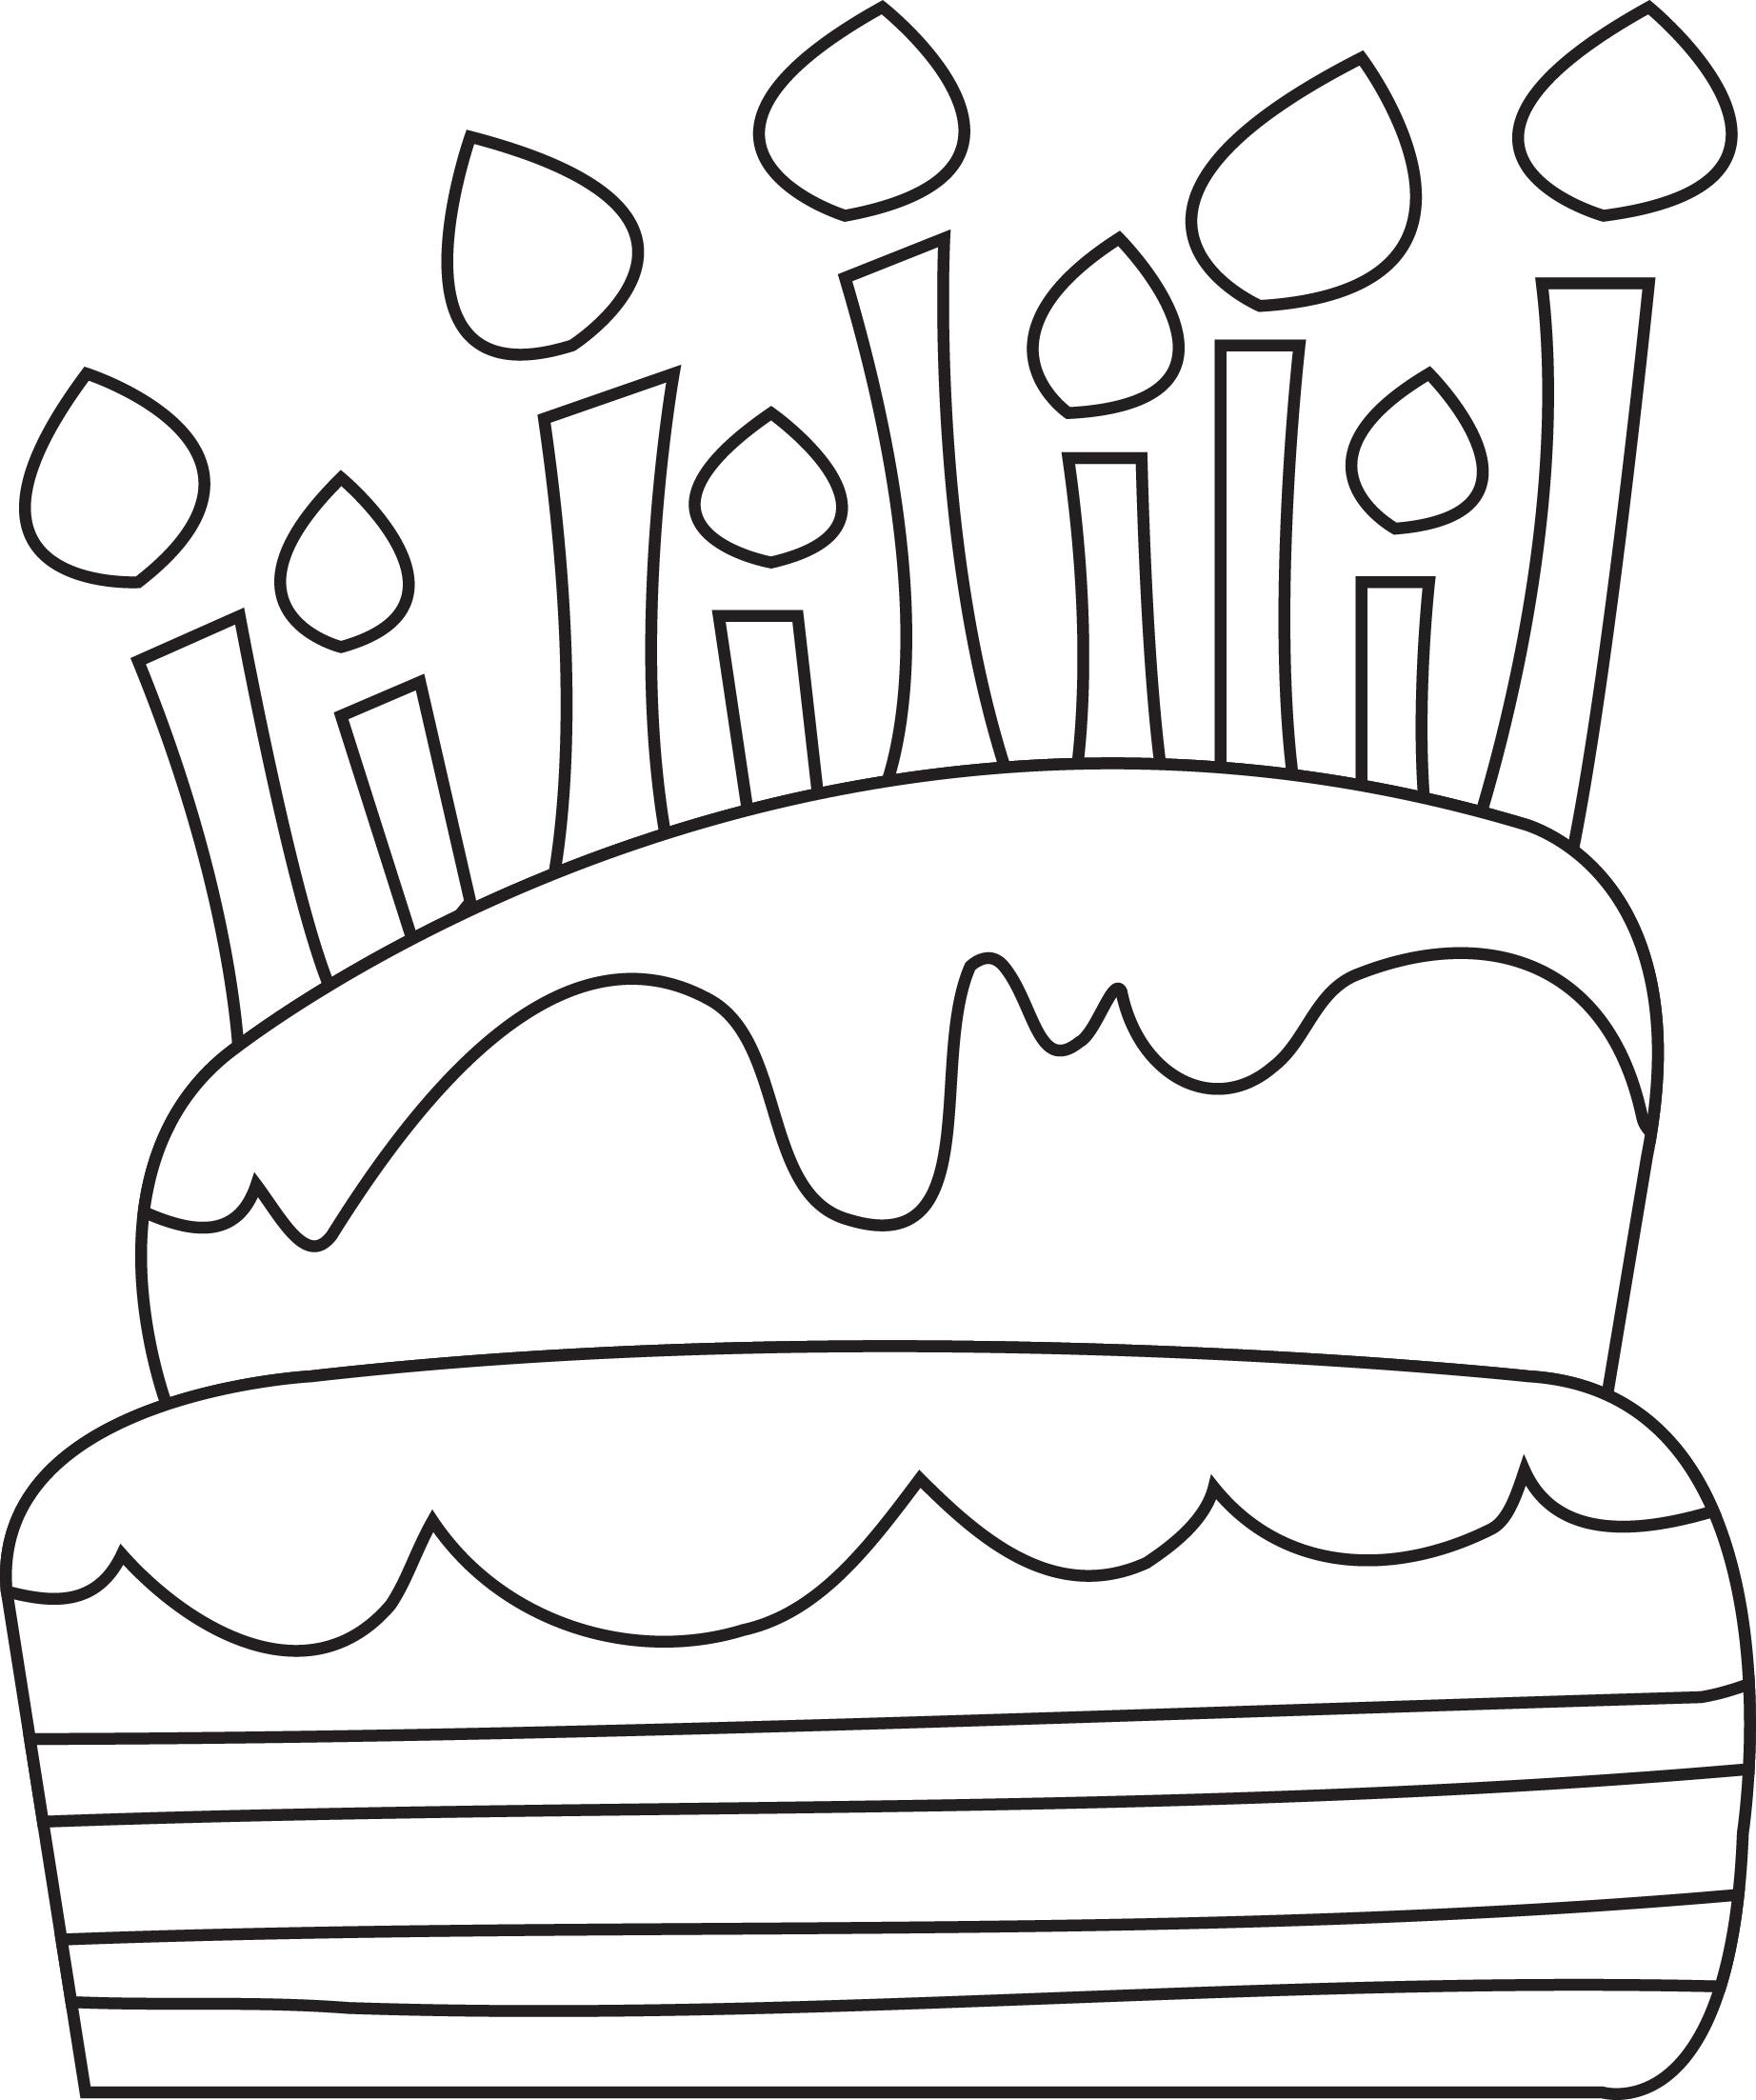 birthday cake easy drawing ; 6Tr5eKKGc